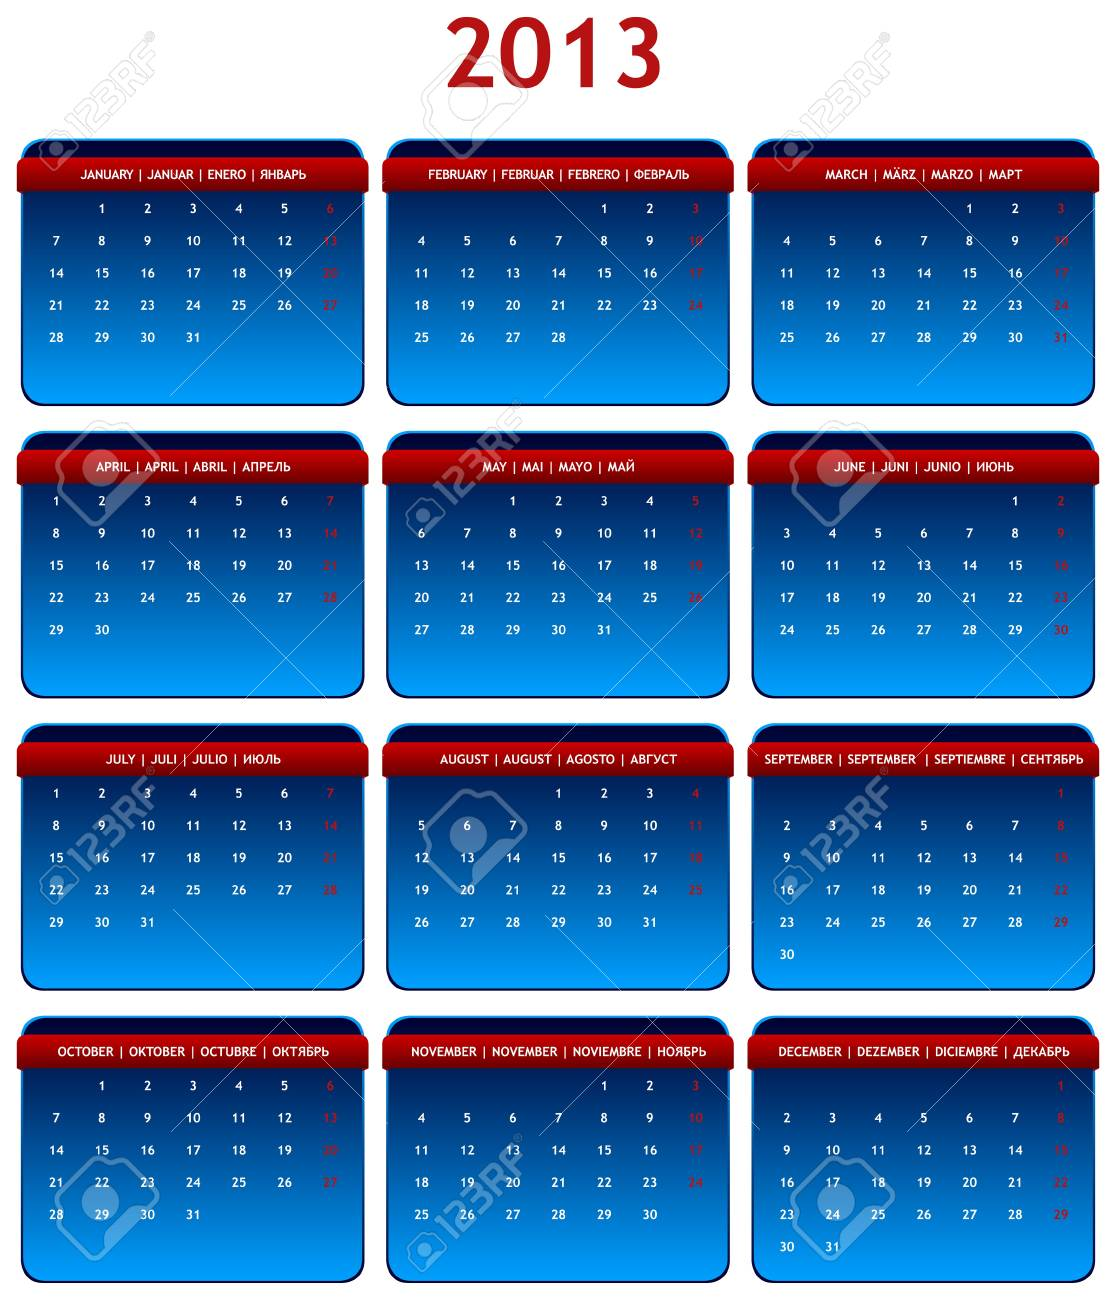 2013 International Calendar in Shades of Gray on White Background Stock Vector - 15417789